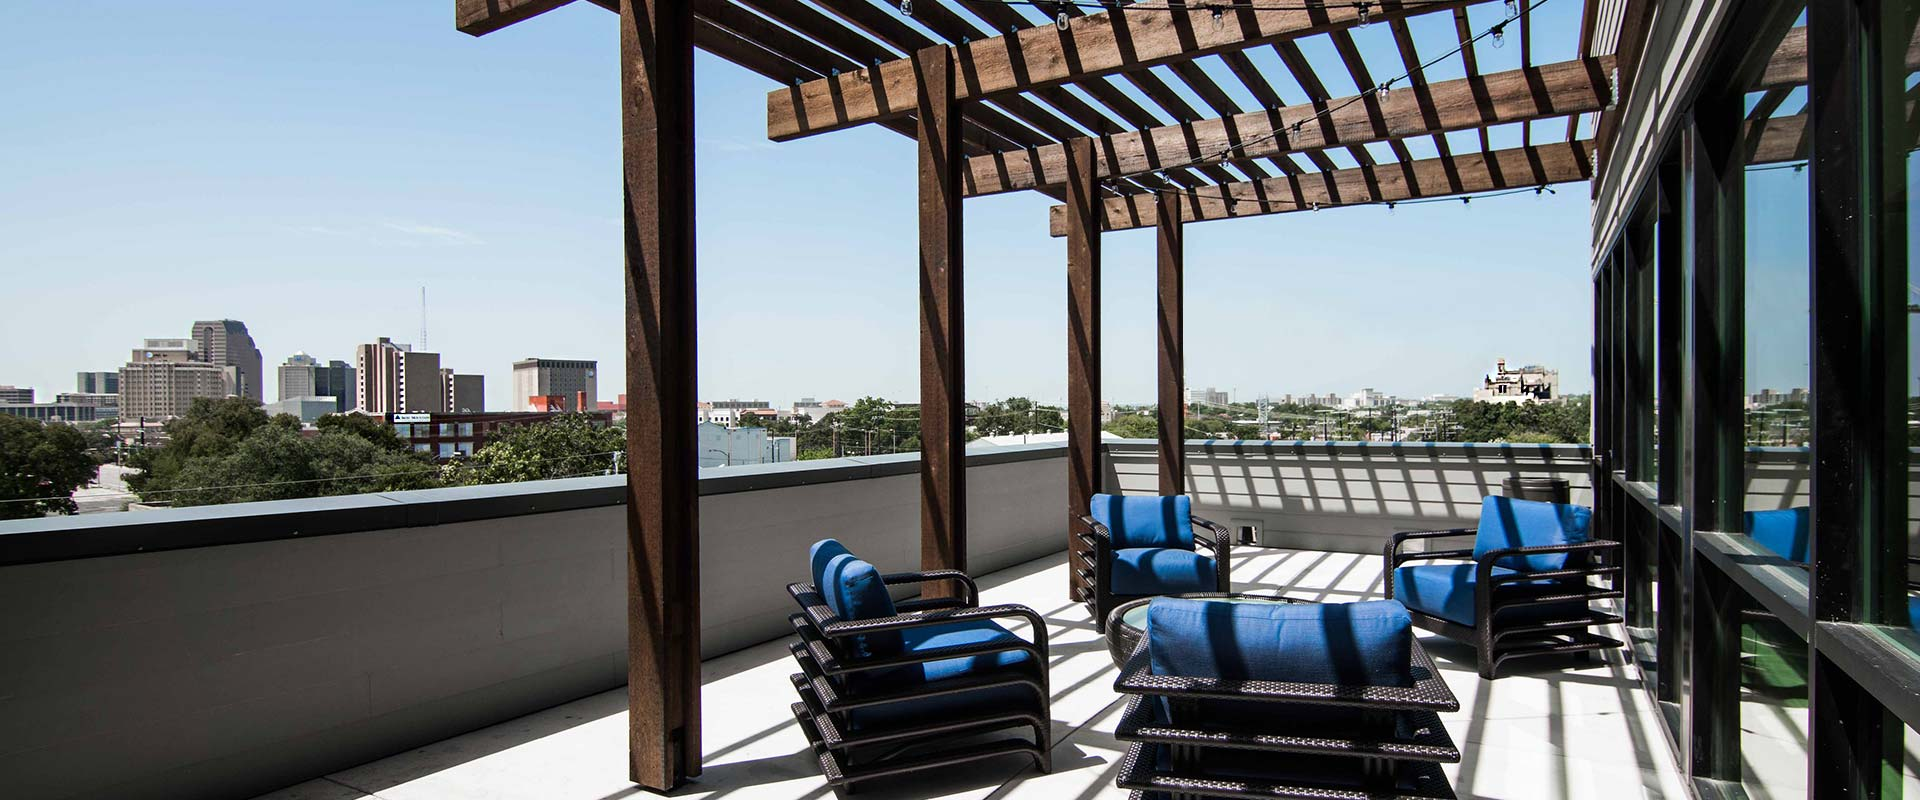 Rooftop Lounge at Rivera Apartments in San Antonio, Texas